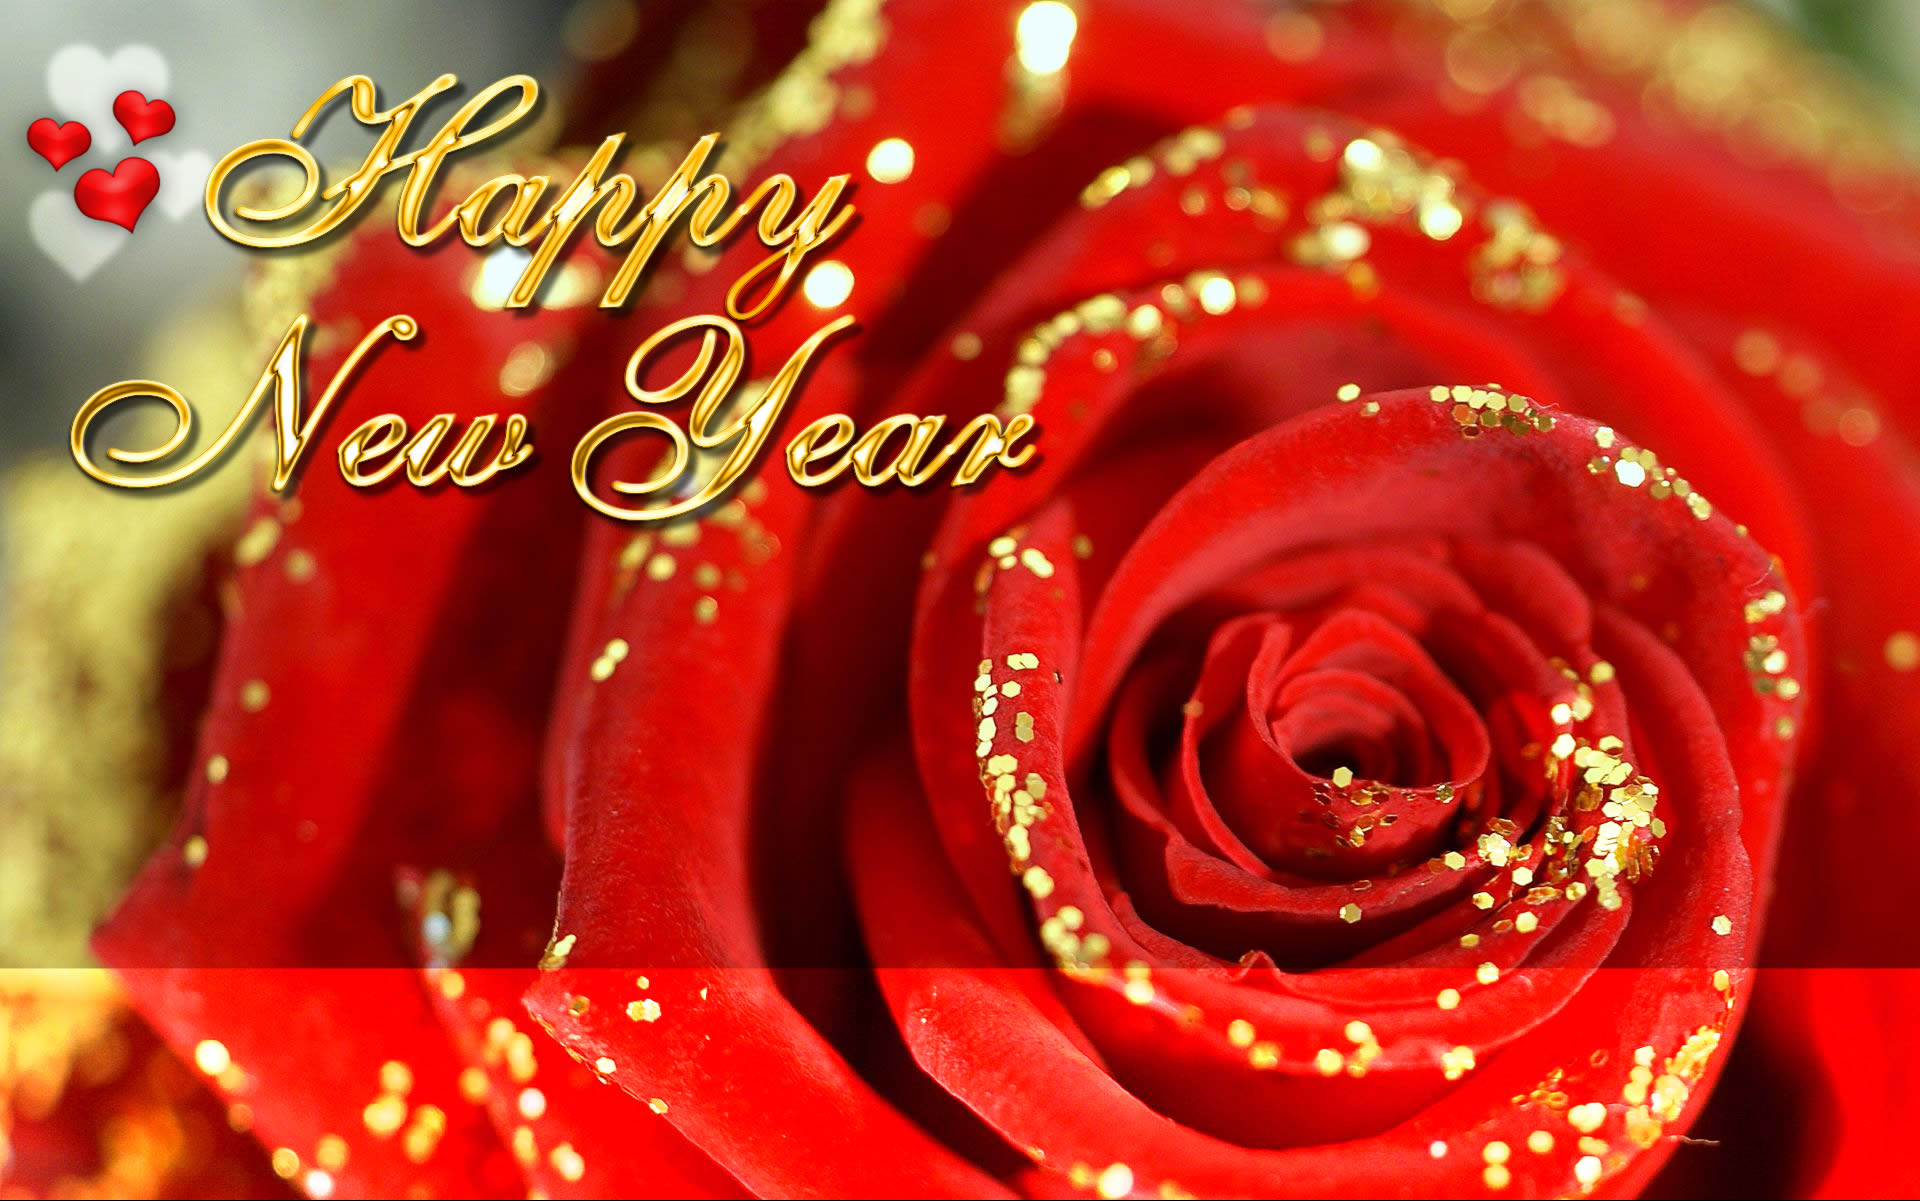 Happy New Year 2015 Images   Happy New Year 2015 1920x1201